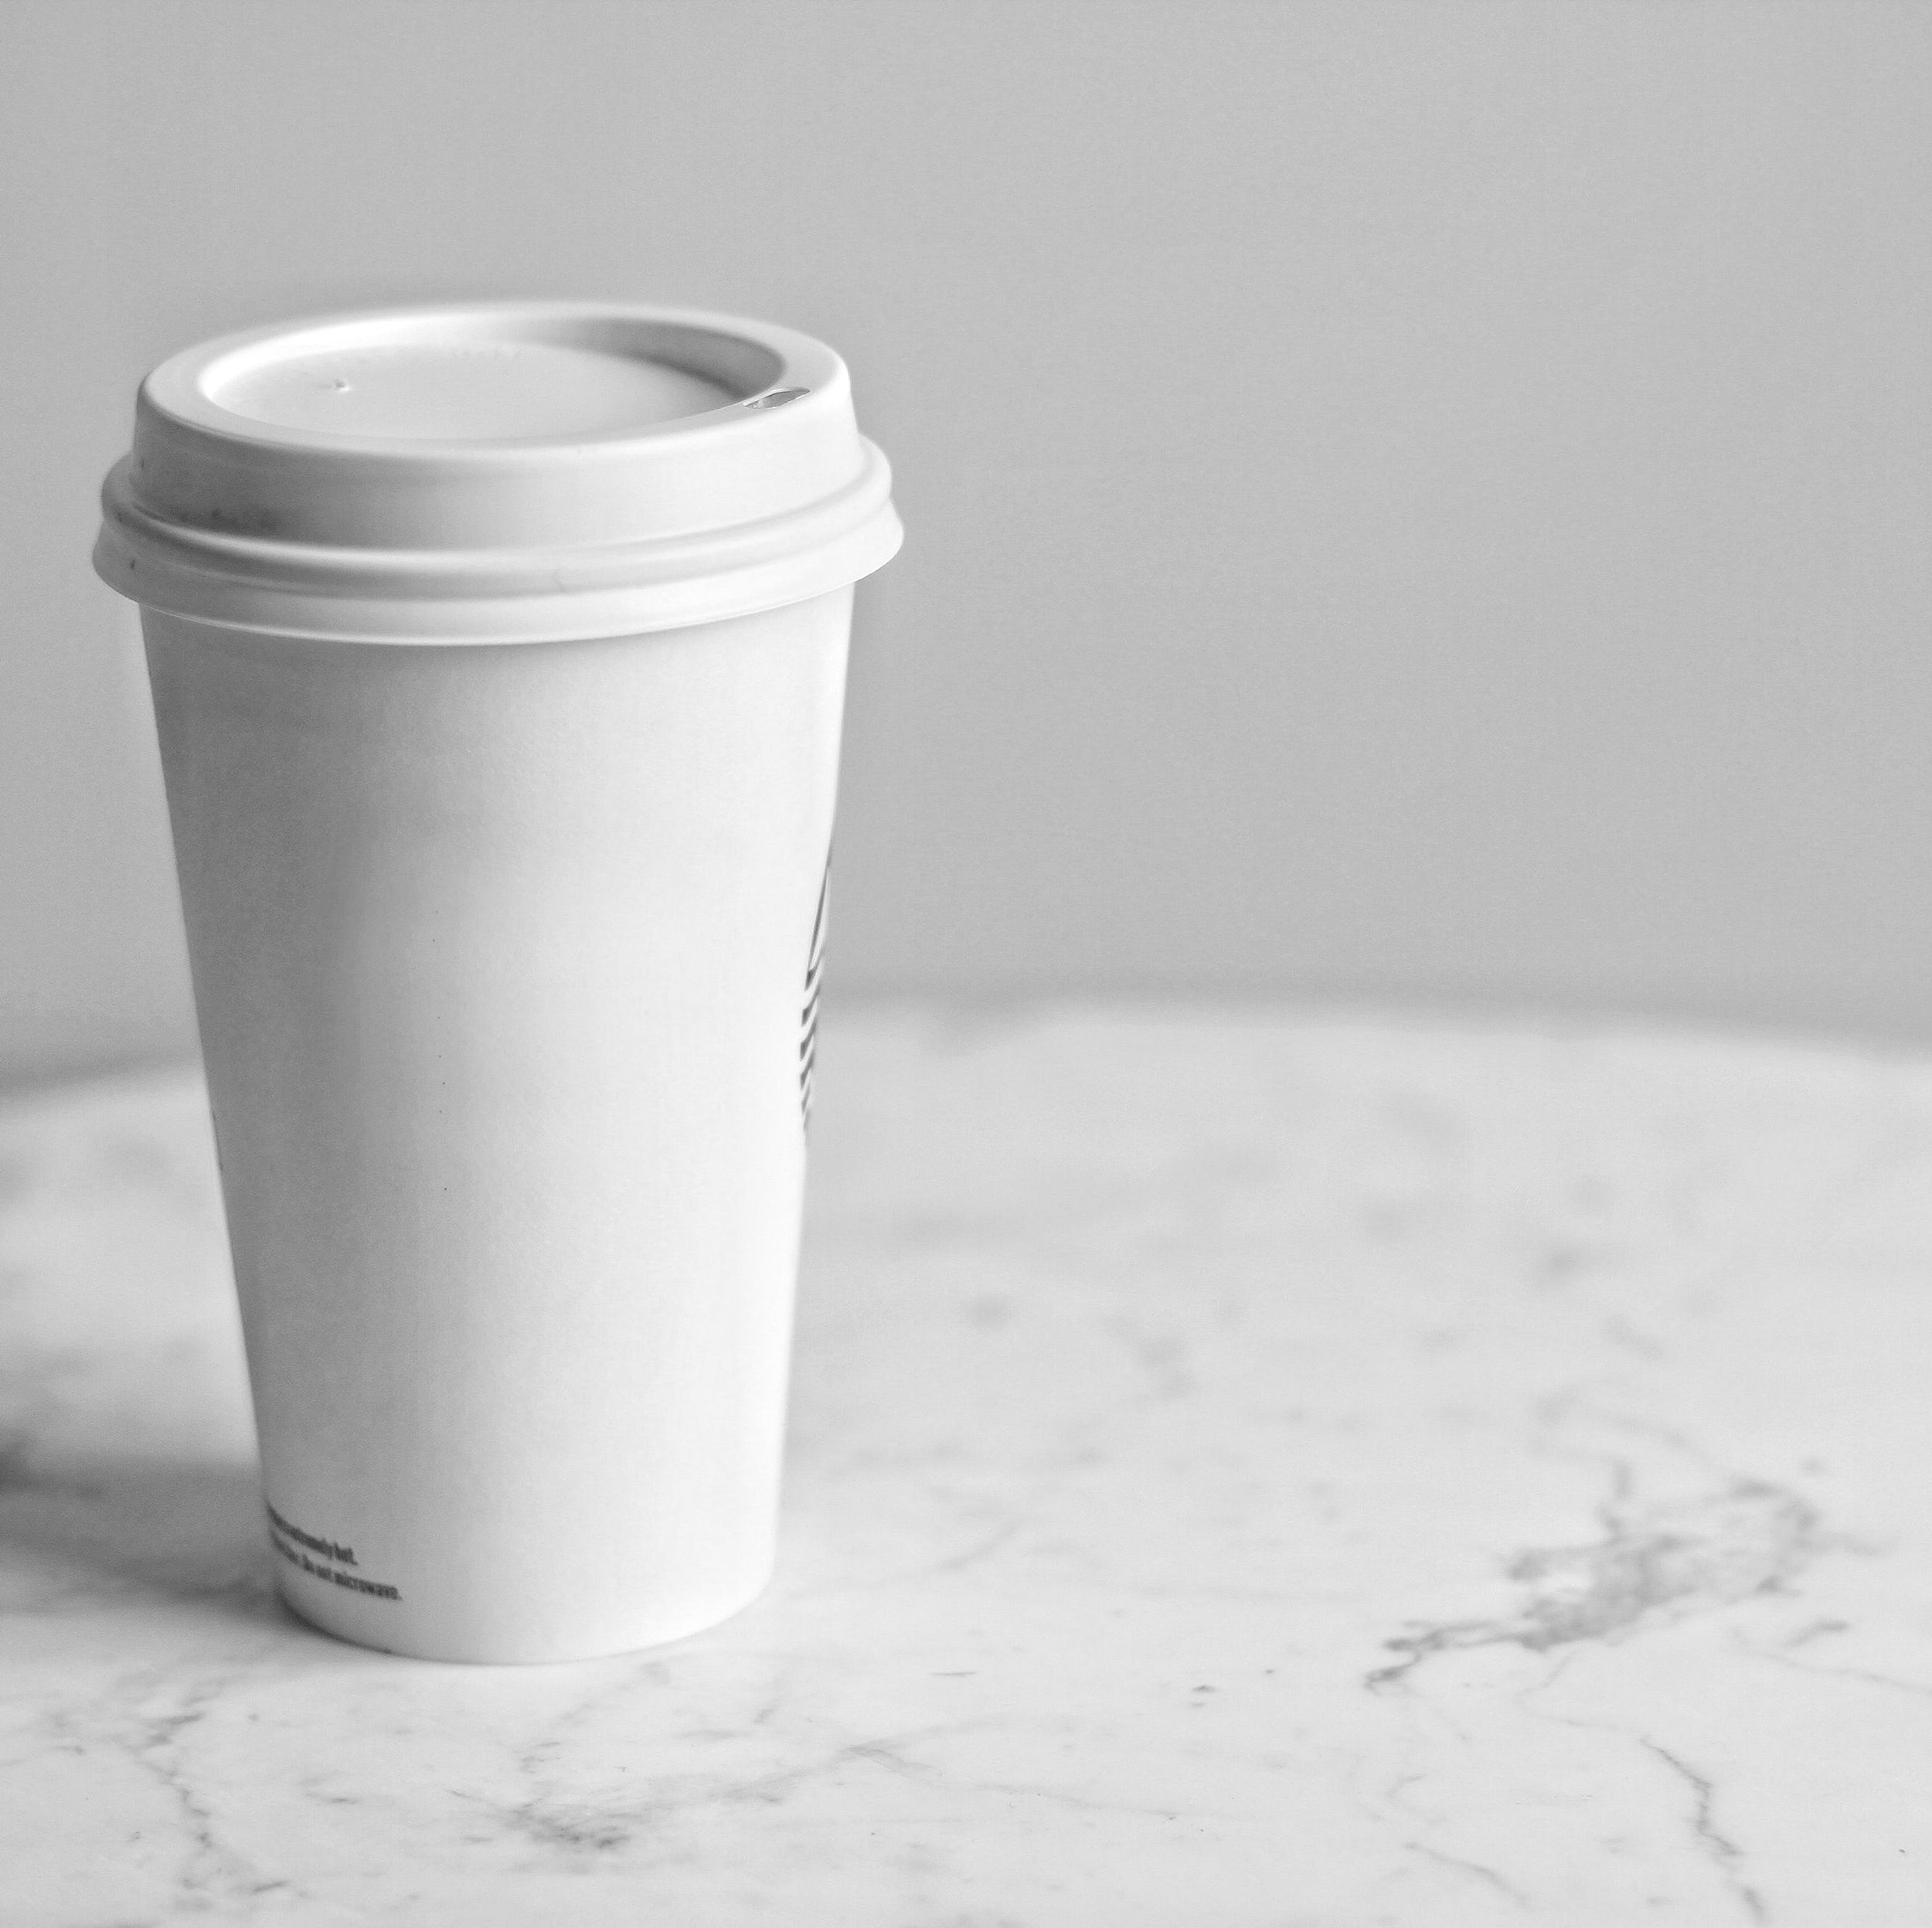 A white single-use coffee cup sits on a marble table